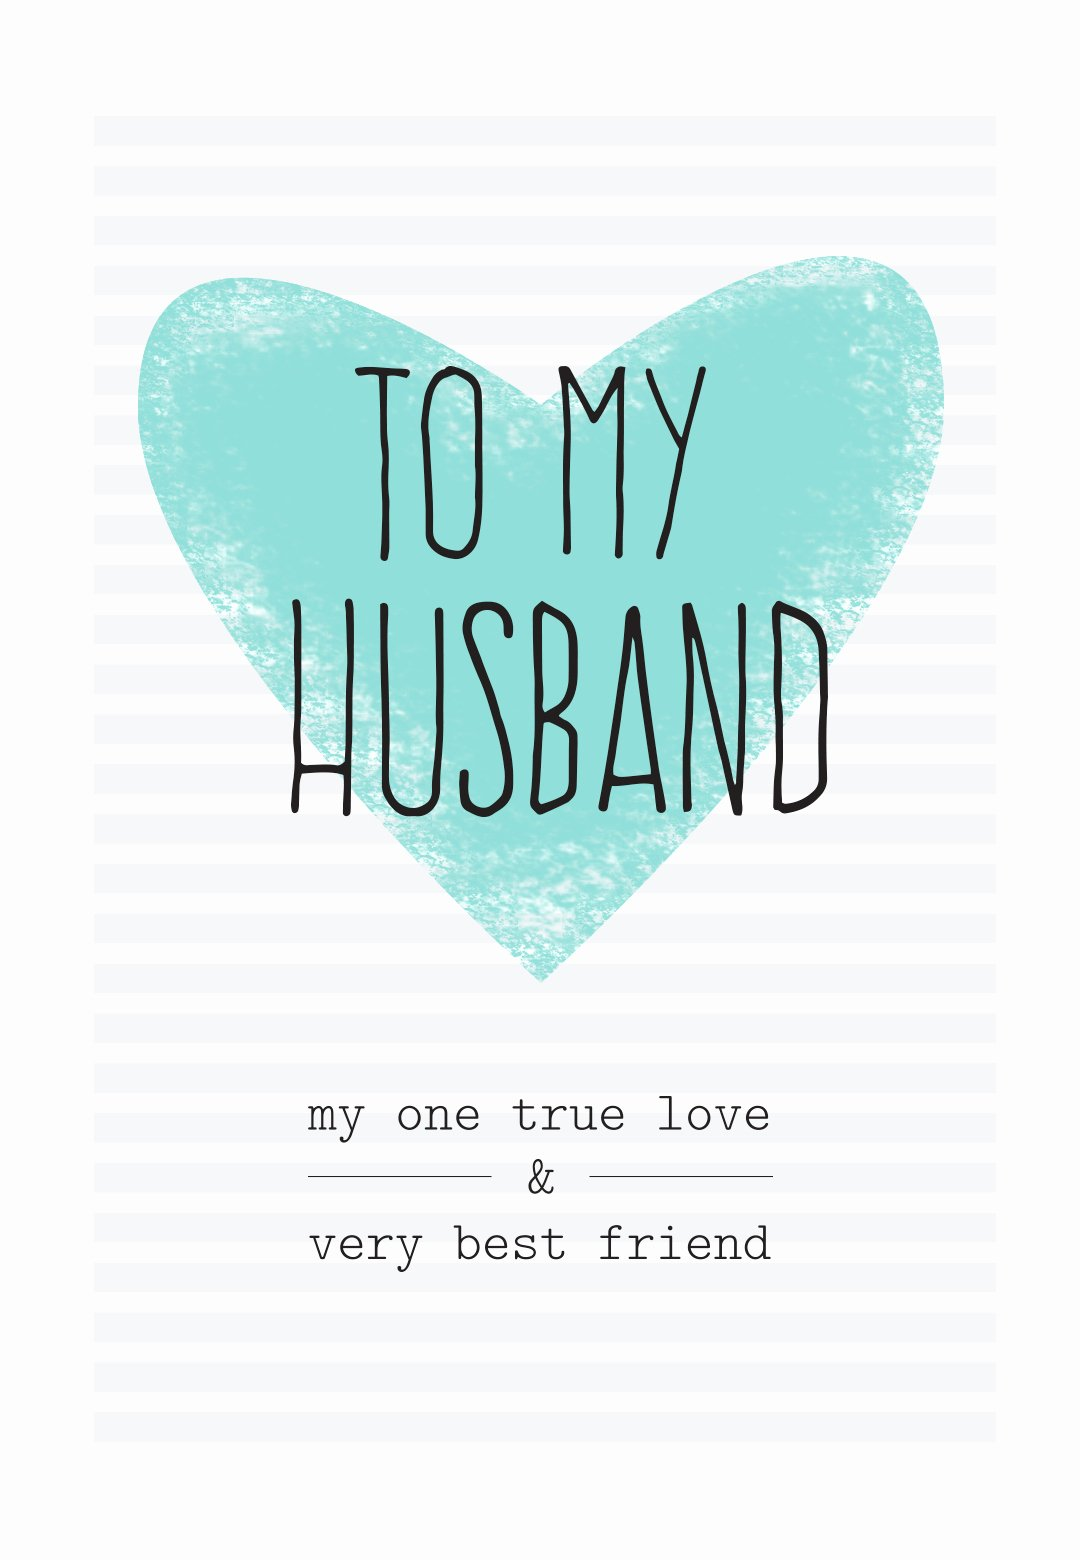 Printable Anniversary Cards Free Best Of Husband Birthday Birthday Card Free